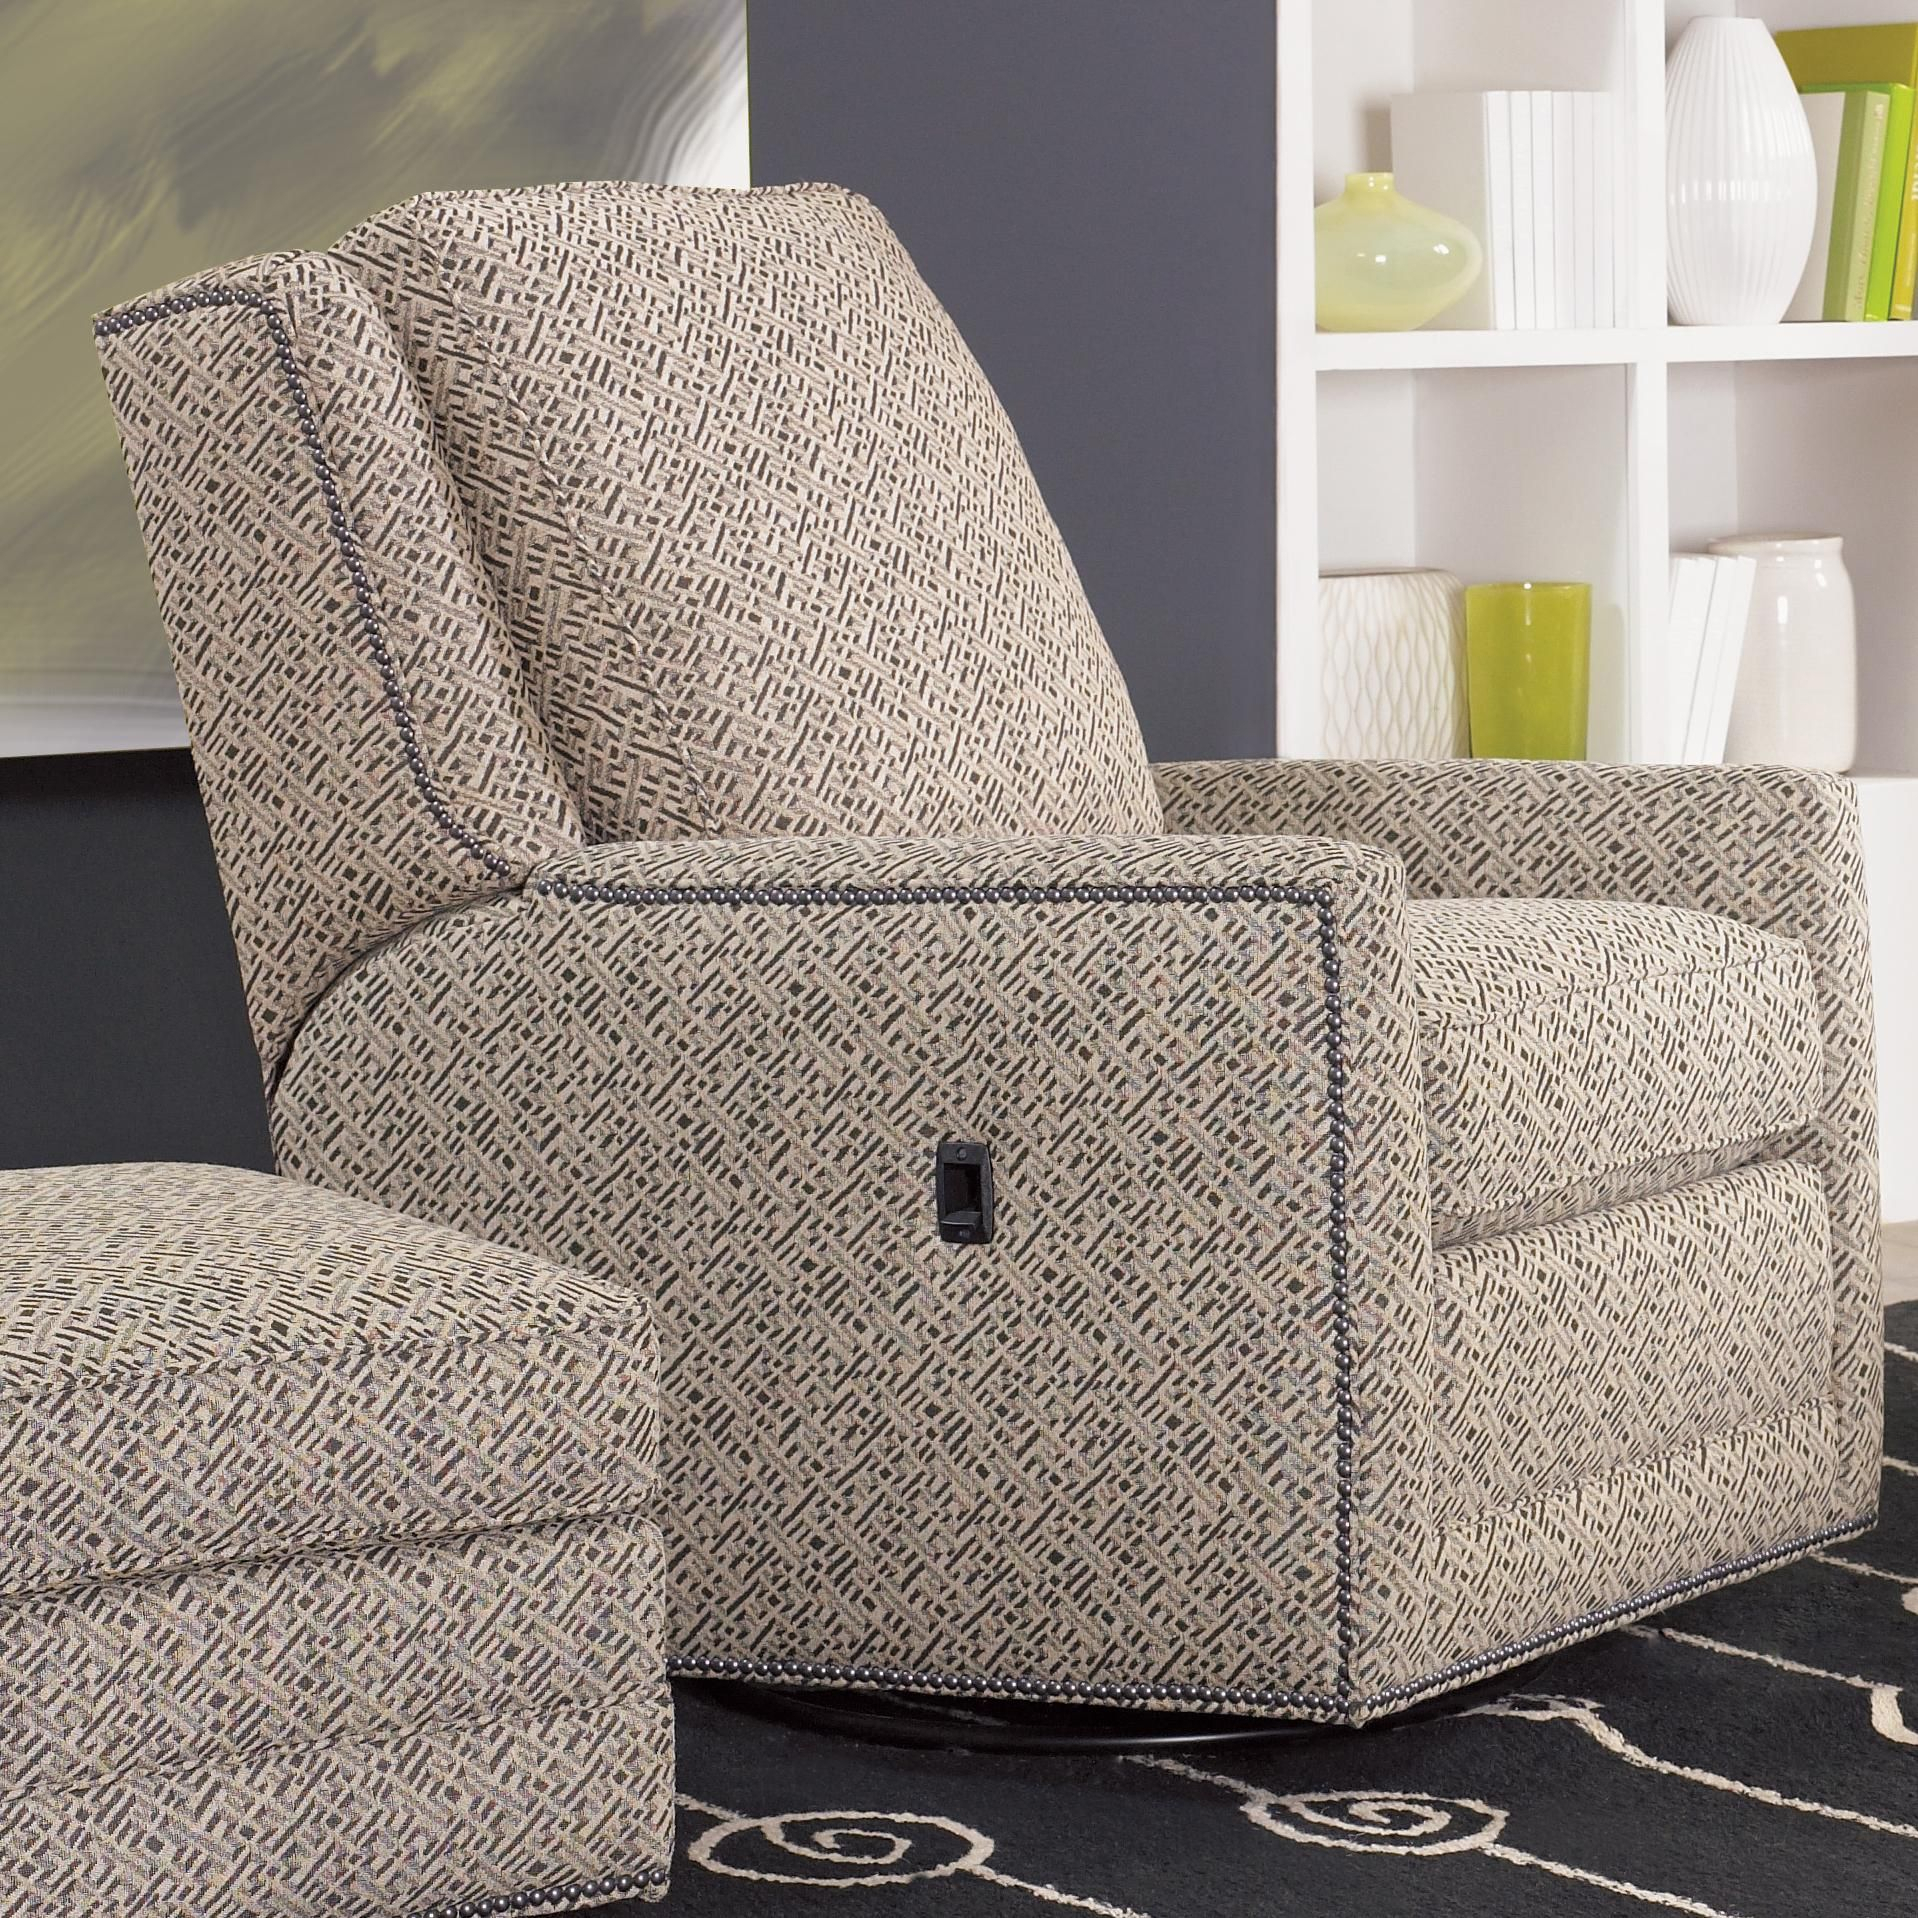 Recliners Swivel Tilt Back Chairsmith Brothers | Recliner In Bailey Linen Flare Arm Wing Skirted Swivel Gliders (View 5 of 25)